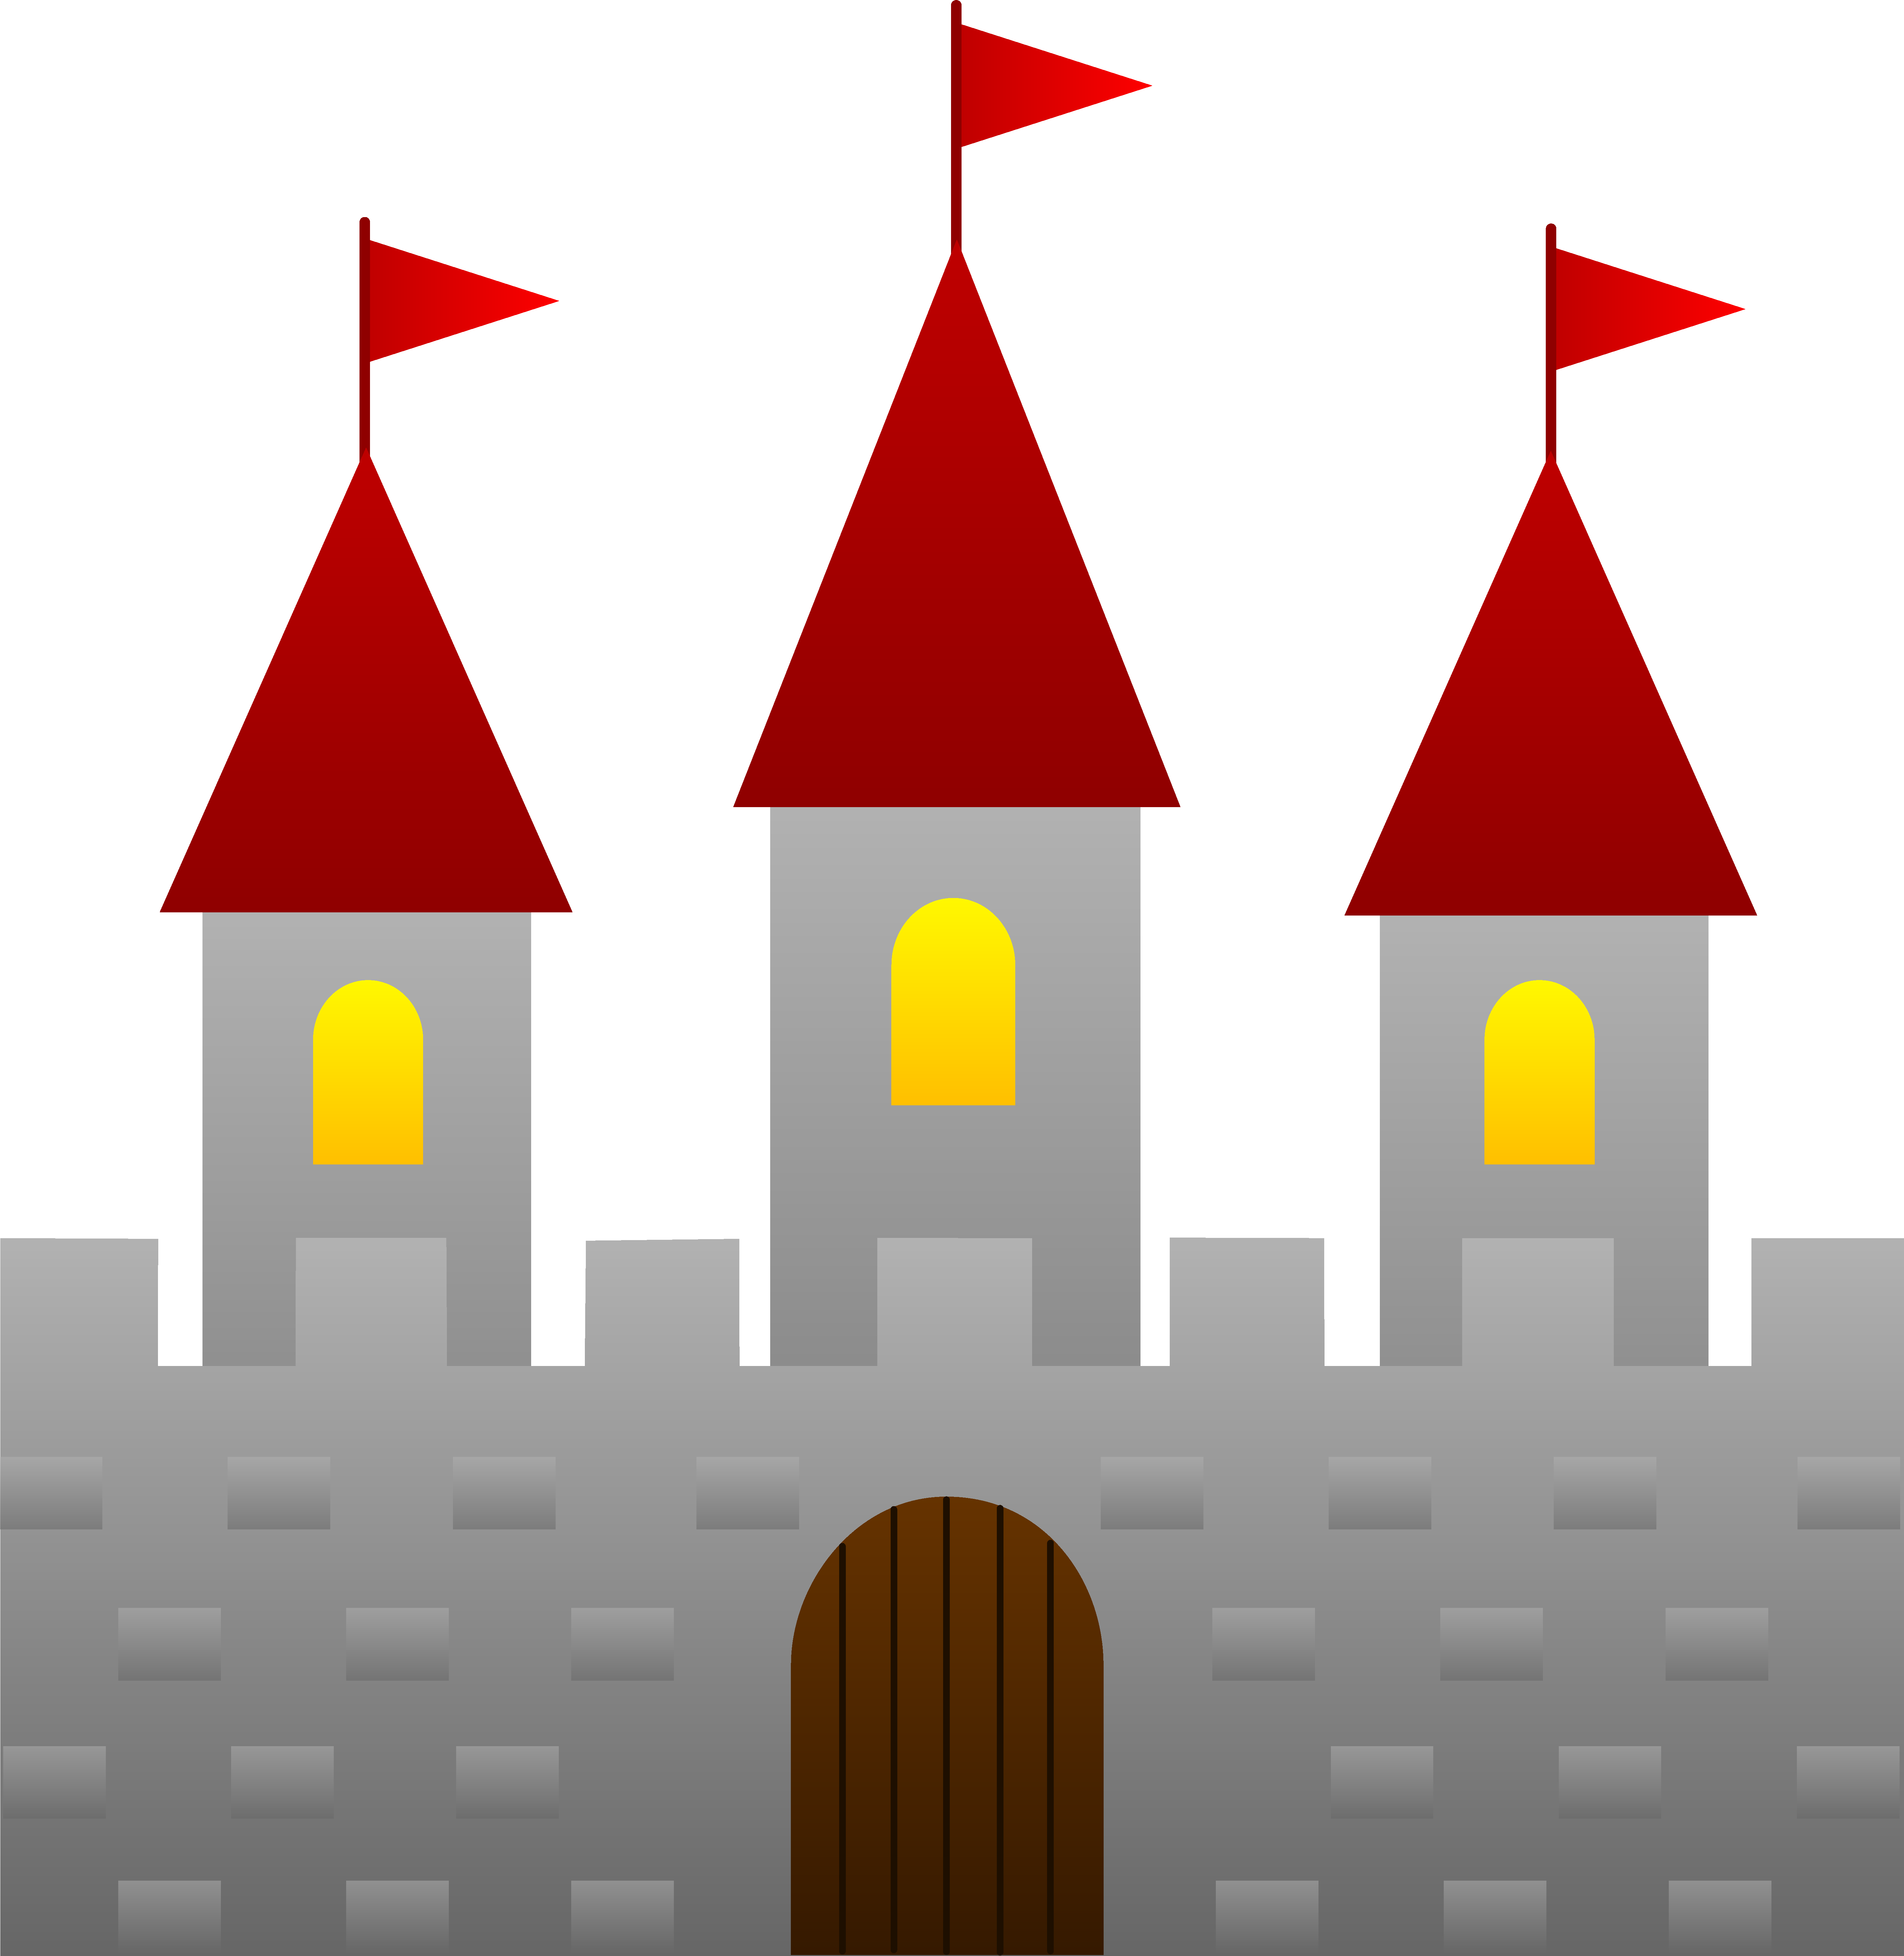 Staircase clipart castle. Yearbook page whizscastle